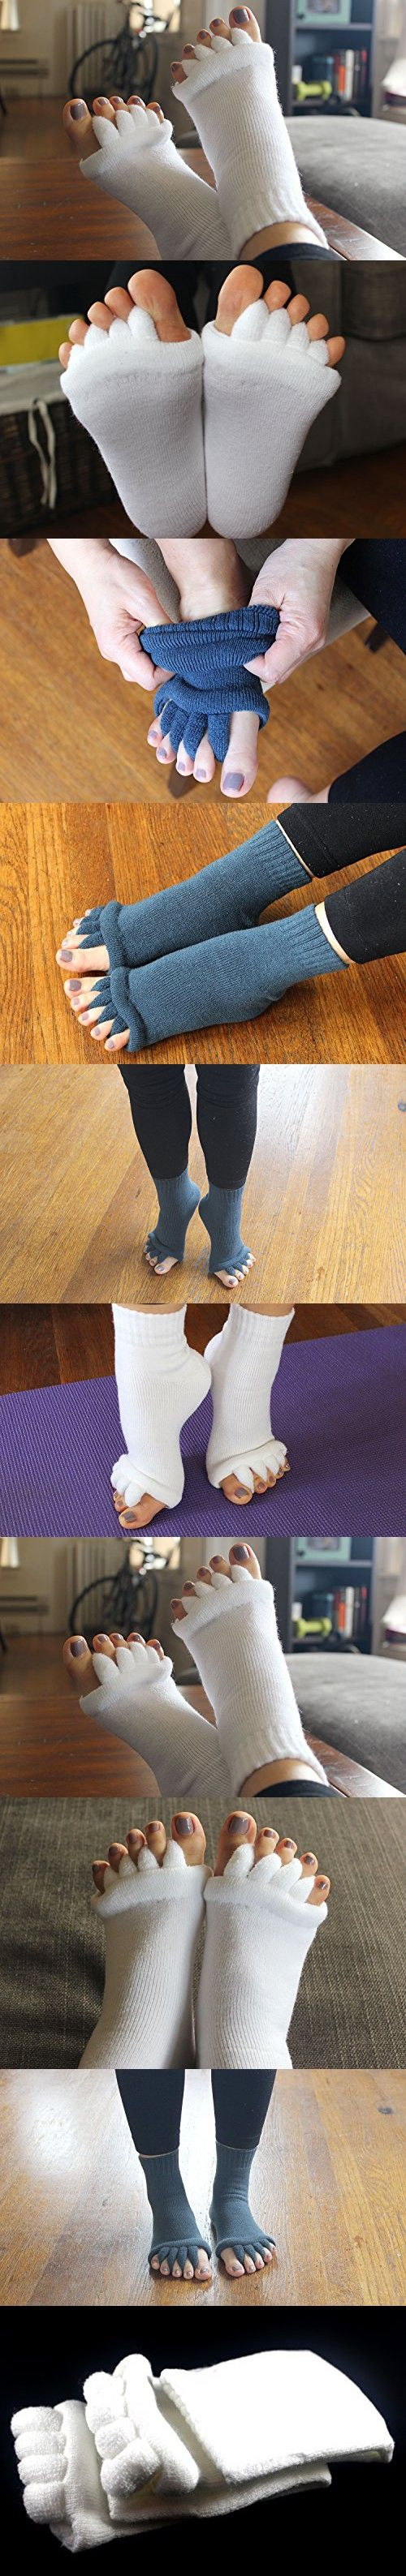 Toe Separator Yoga Gym Sports Massage Socks for Foot Alignment, Great for Sore Feet and Diabetics by TRiiM Fitness with FREE Exercise guide for your feet!